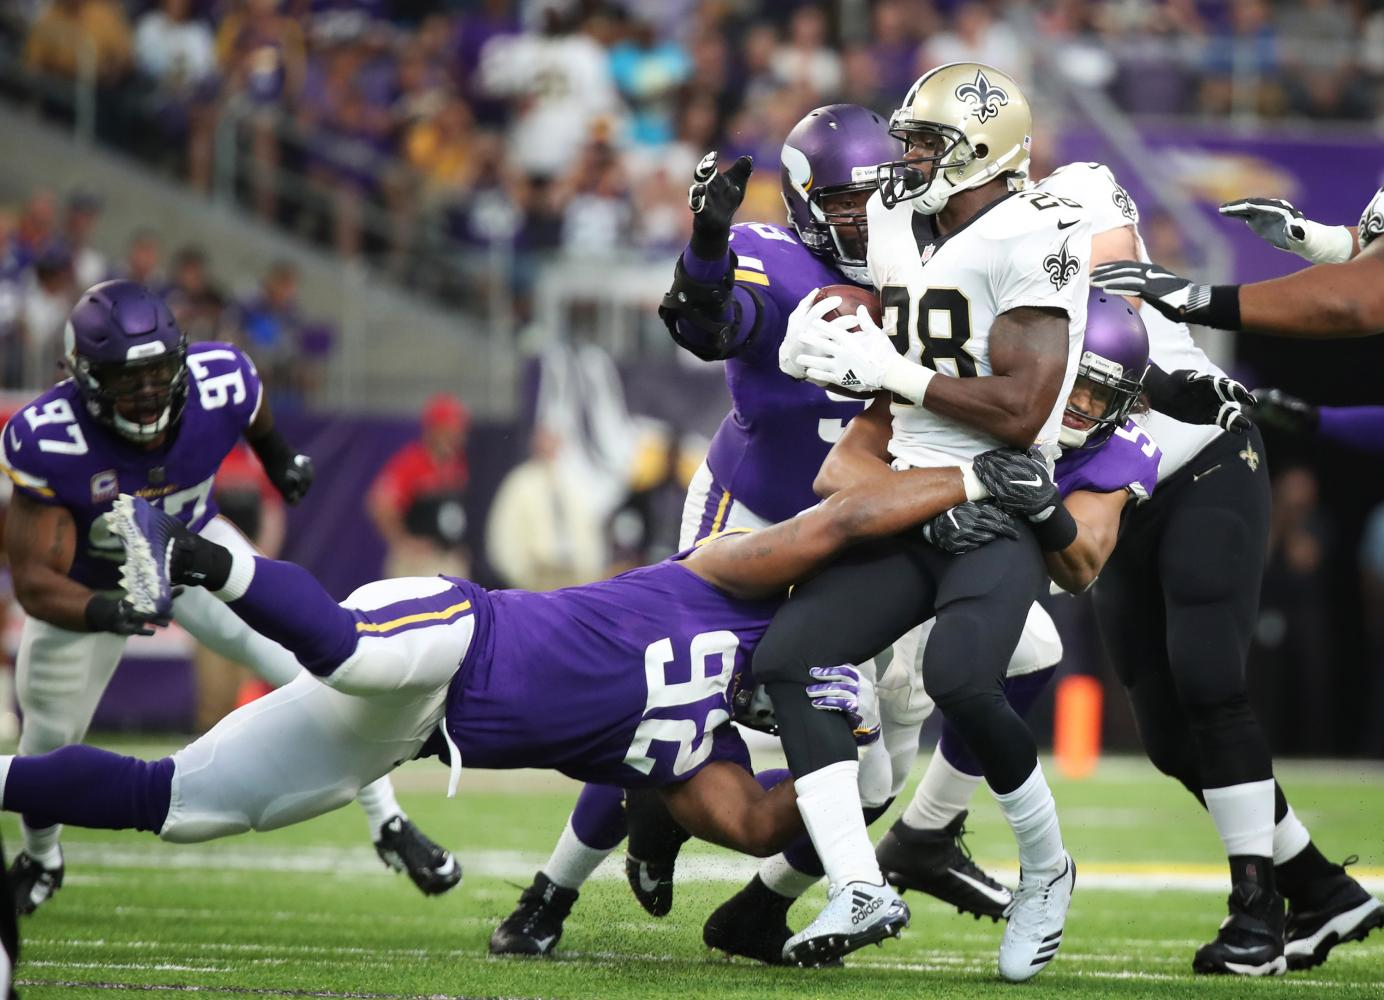 New Orleans Saints running back Adrian Peterson (28) is stopped for no gain by Minnesota Vikings defensive tackle Tom Johnson (92), and middle linebacker Eric Kendricks (54) in the first quarter Monday night, Sept. 11, 2017 at U.S. Bank Stadium in Minneapolis, Minn. The Vikings won, 29-19.